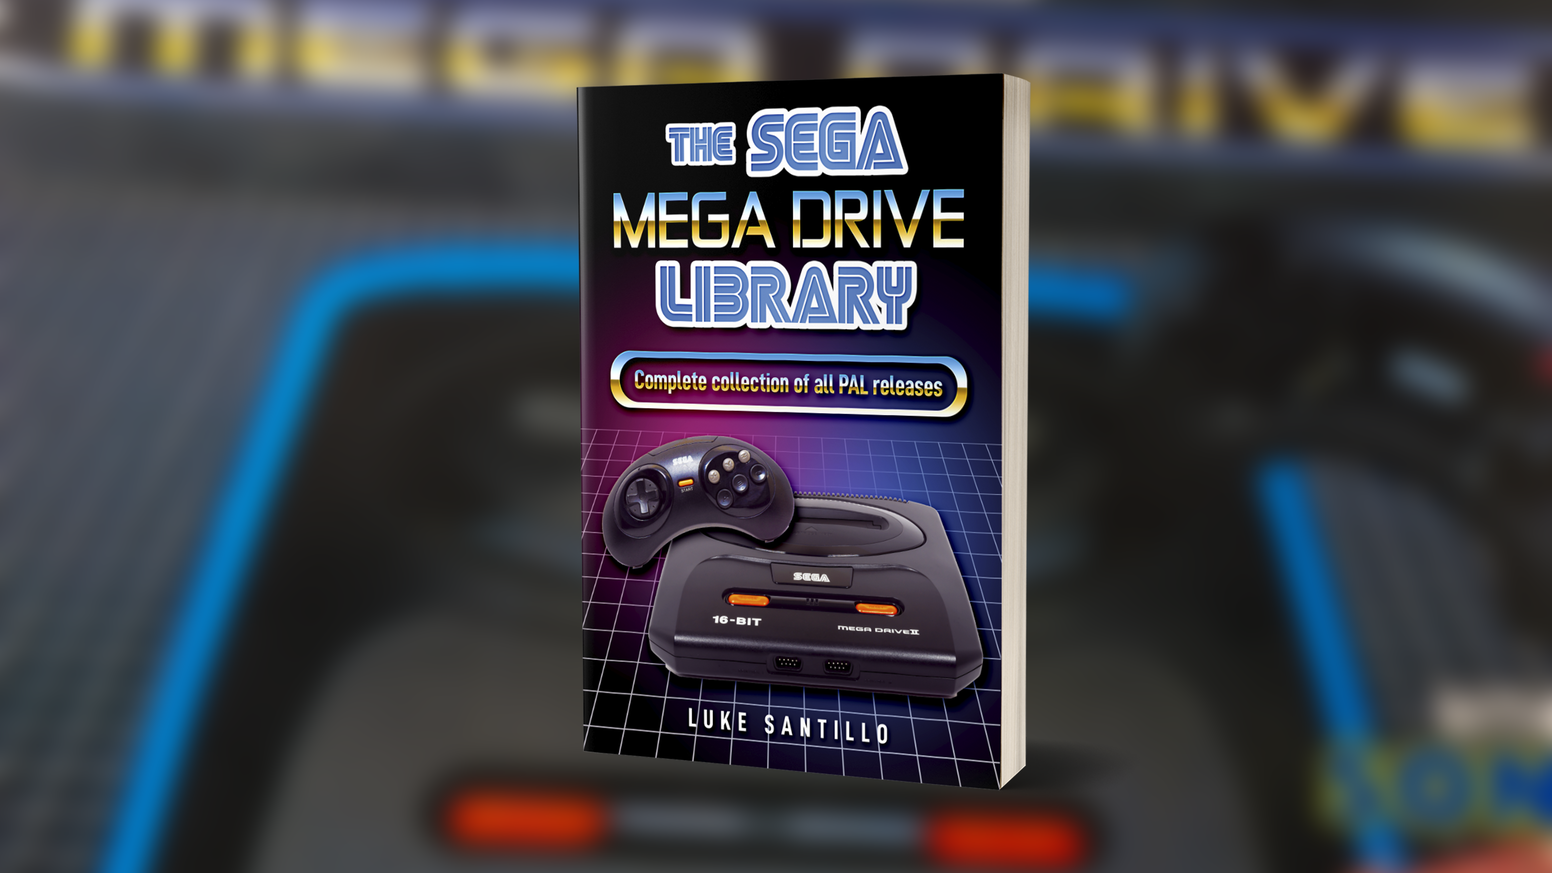 The Sega MEGA DRIVE Library - One Book, All PAL Releases by Luke